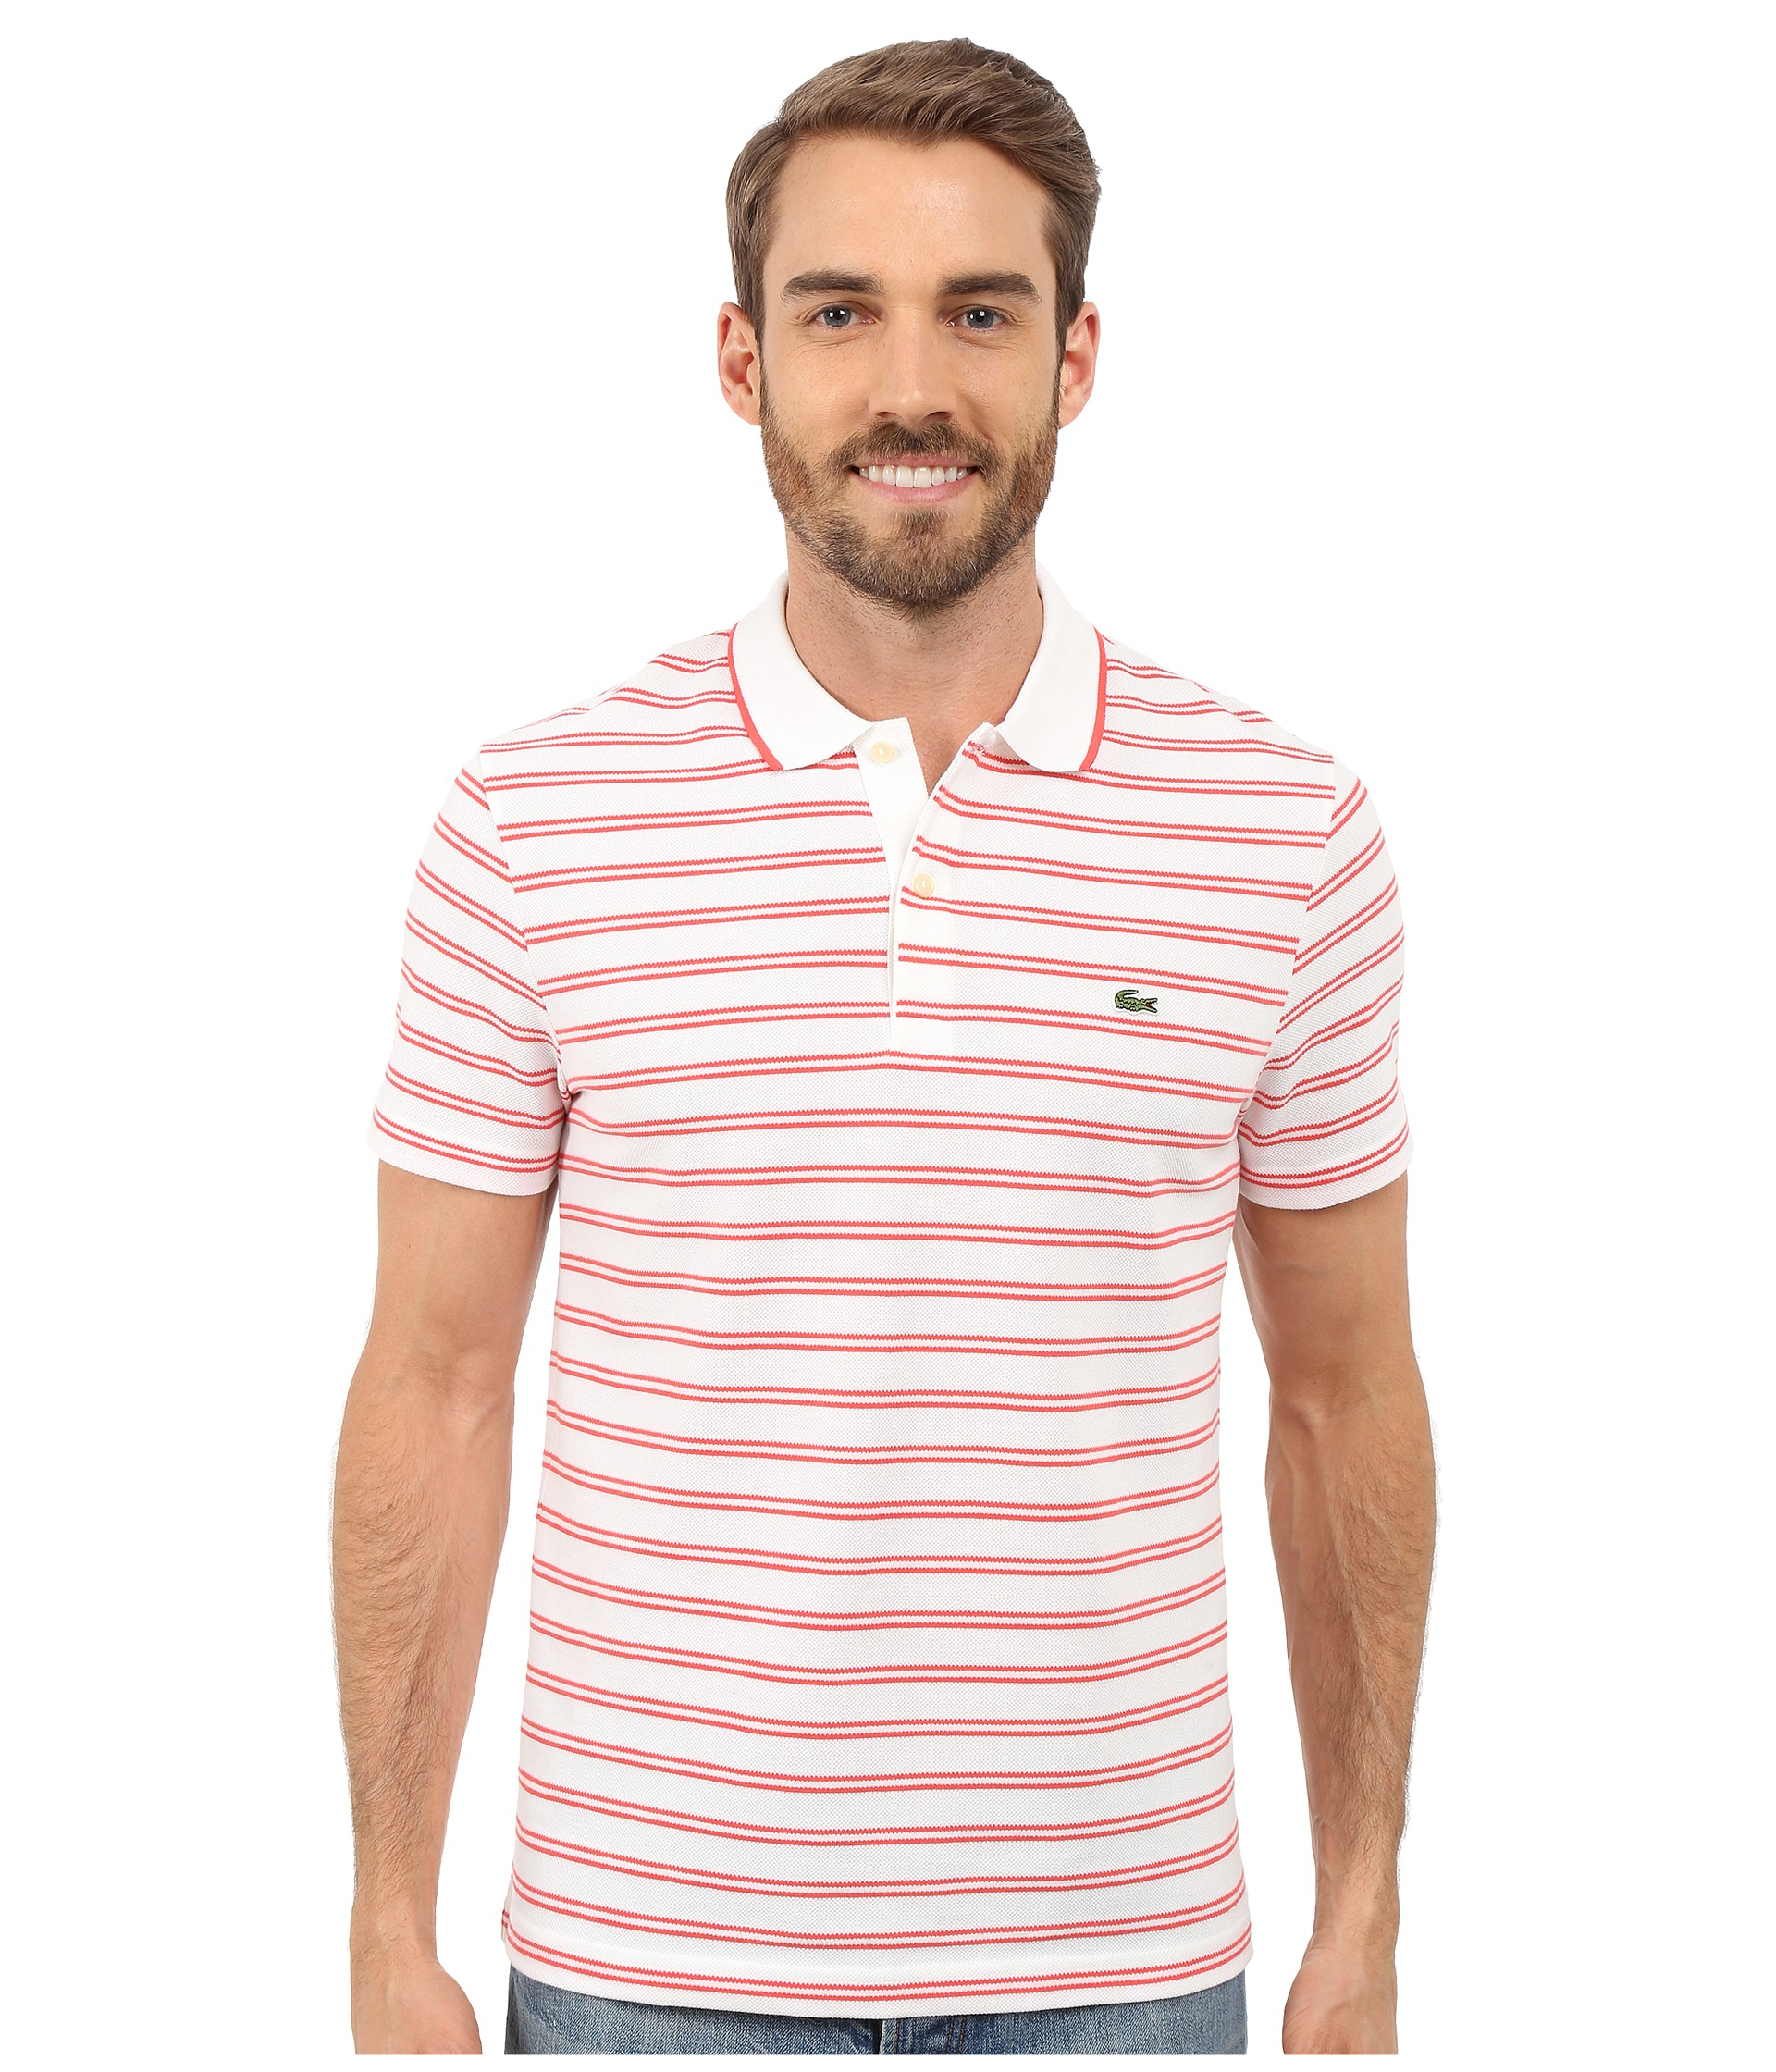 Lacoste short sleeve pique jersey stripe polo white for Lacoste stripe pique polo shirt